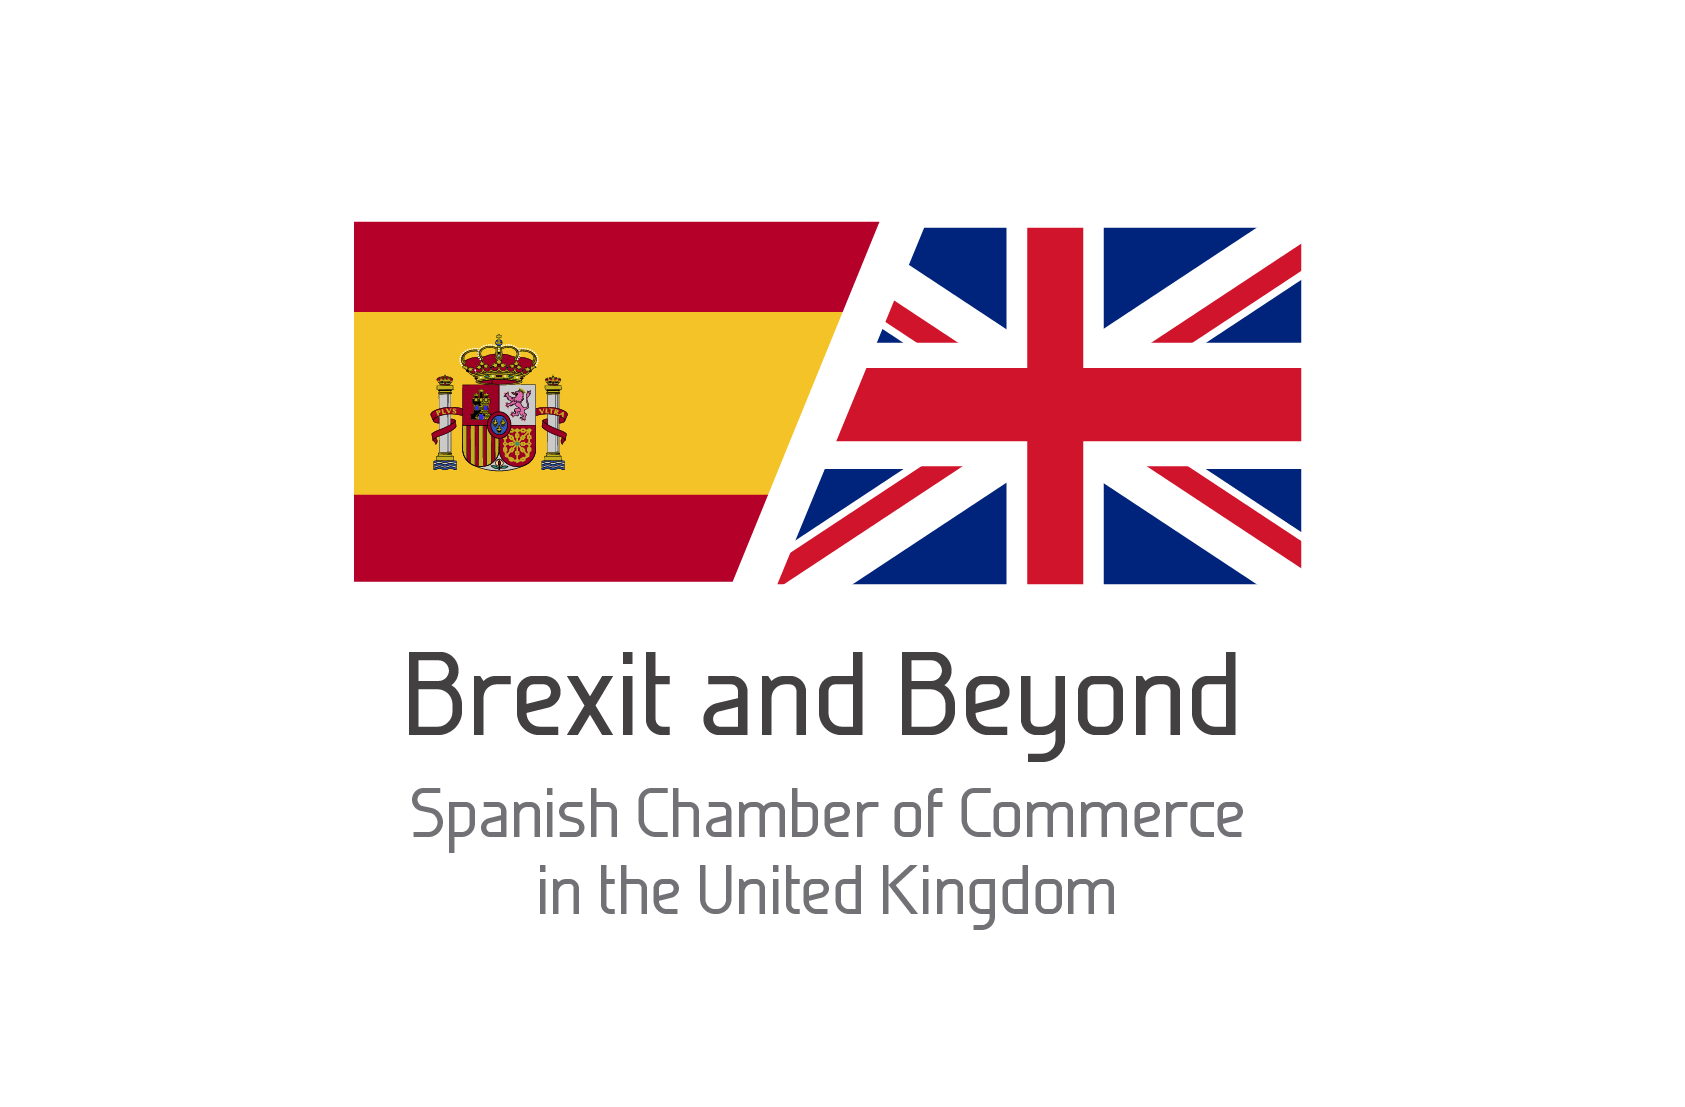 Brexit & Beyond: Exporting to the UK after Brexit